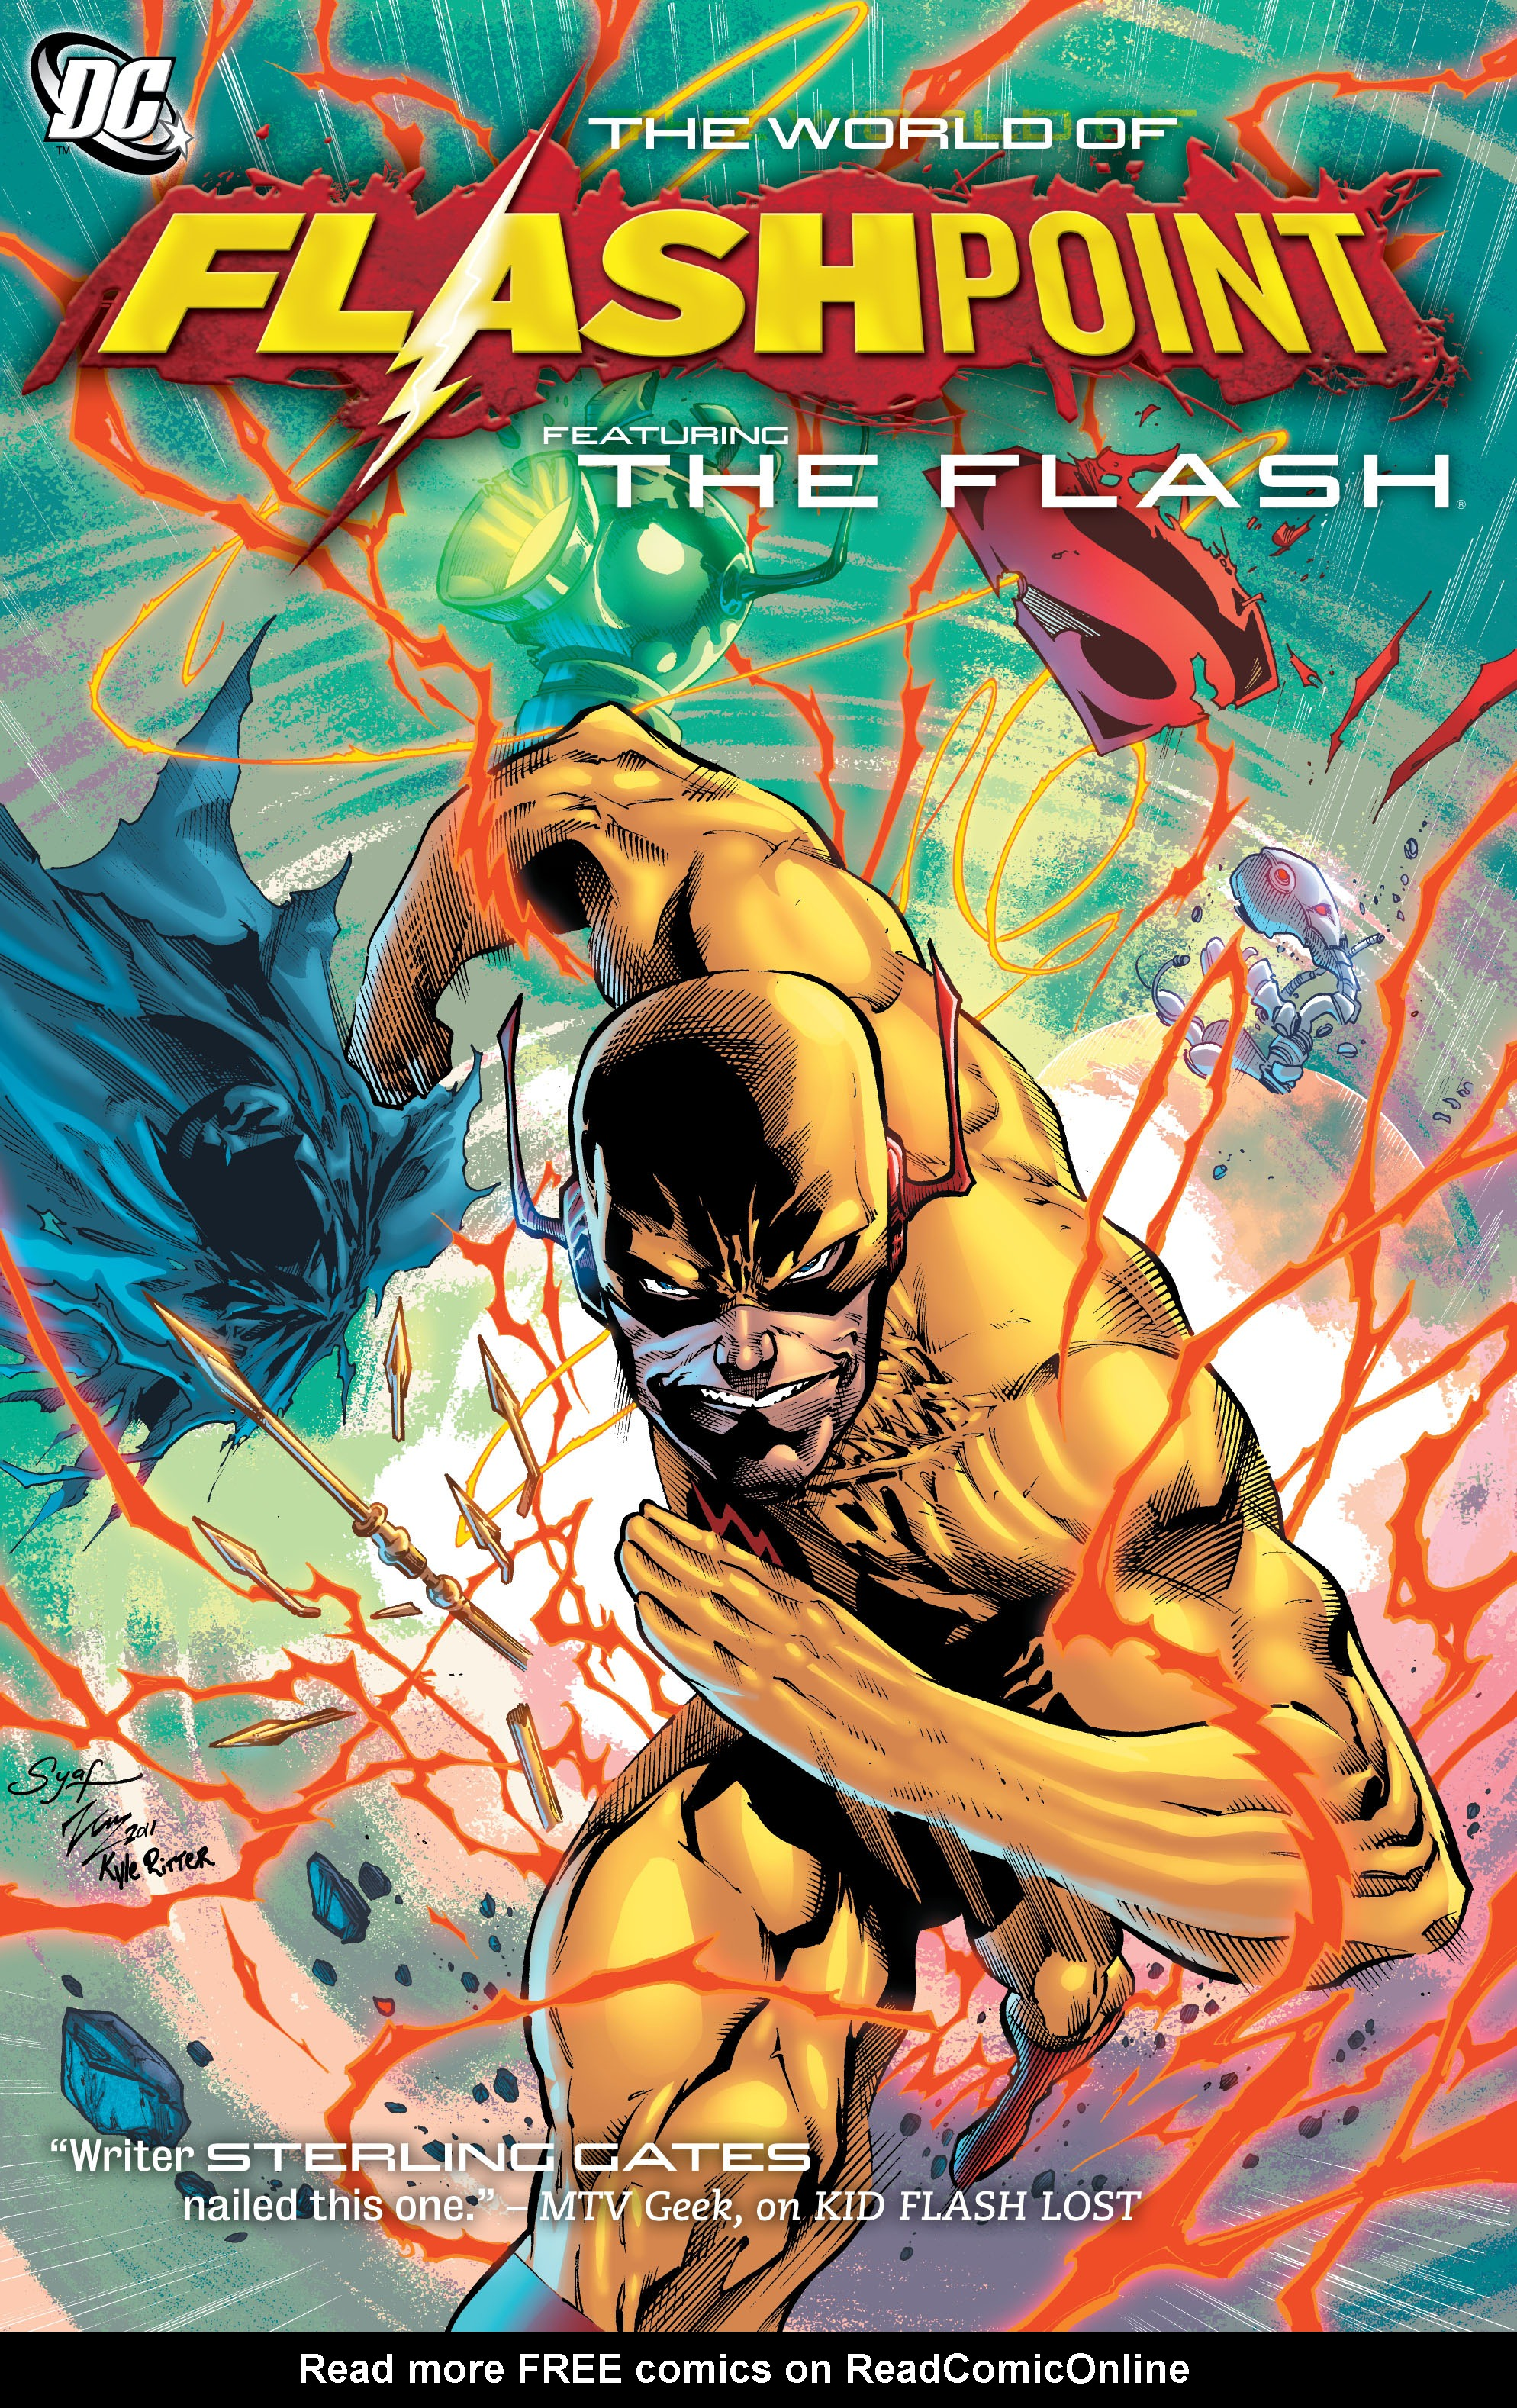 Flashpoint: The World of Flashpoint Featuring The Flash TPB Page 1